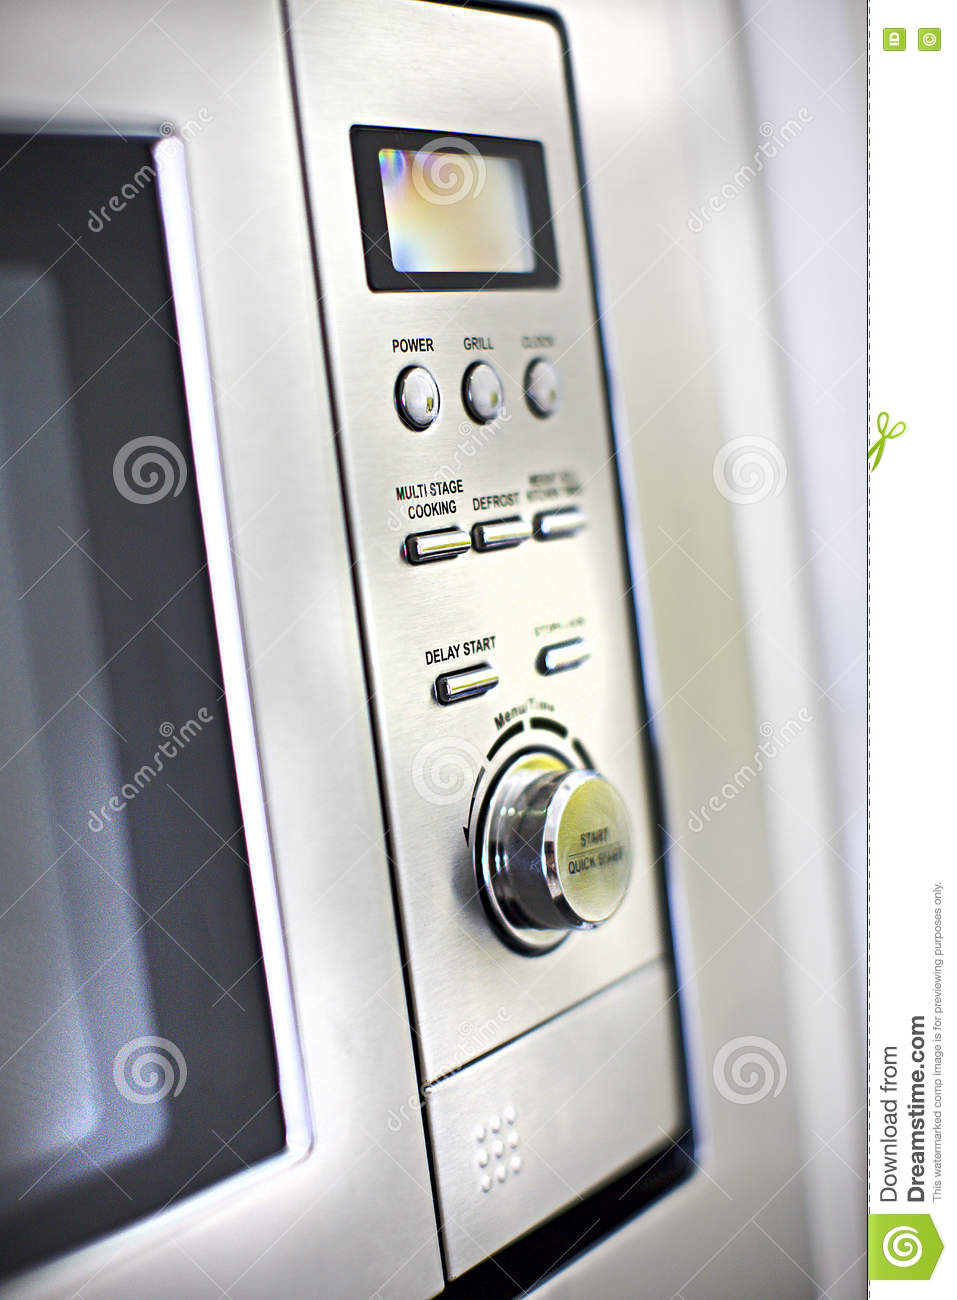 Modern oven control panel close up with buttons and knob